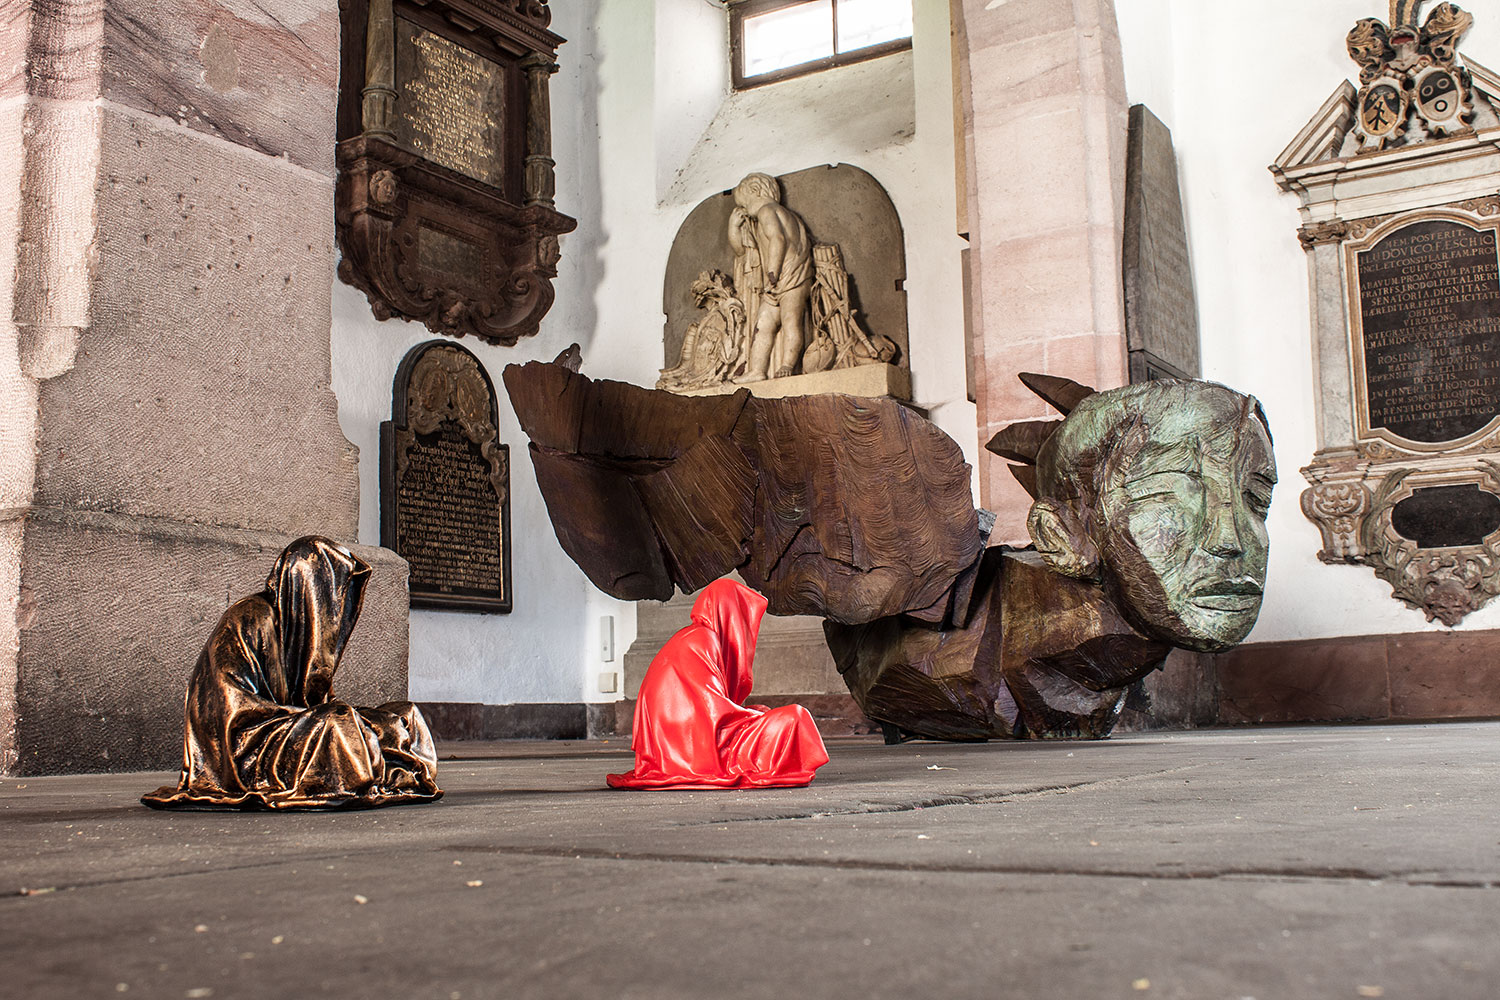 highlights-public-artbasel-scope-art-show-guardians-of-time-manfred-kielnhofer-steinreich-contemporary-art-sculpture-tour-art-parcours-1568y